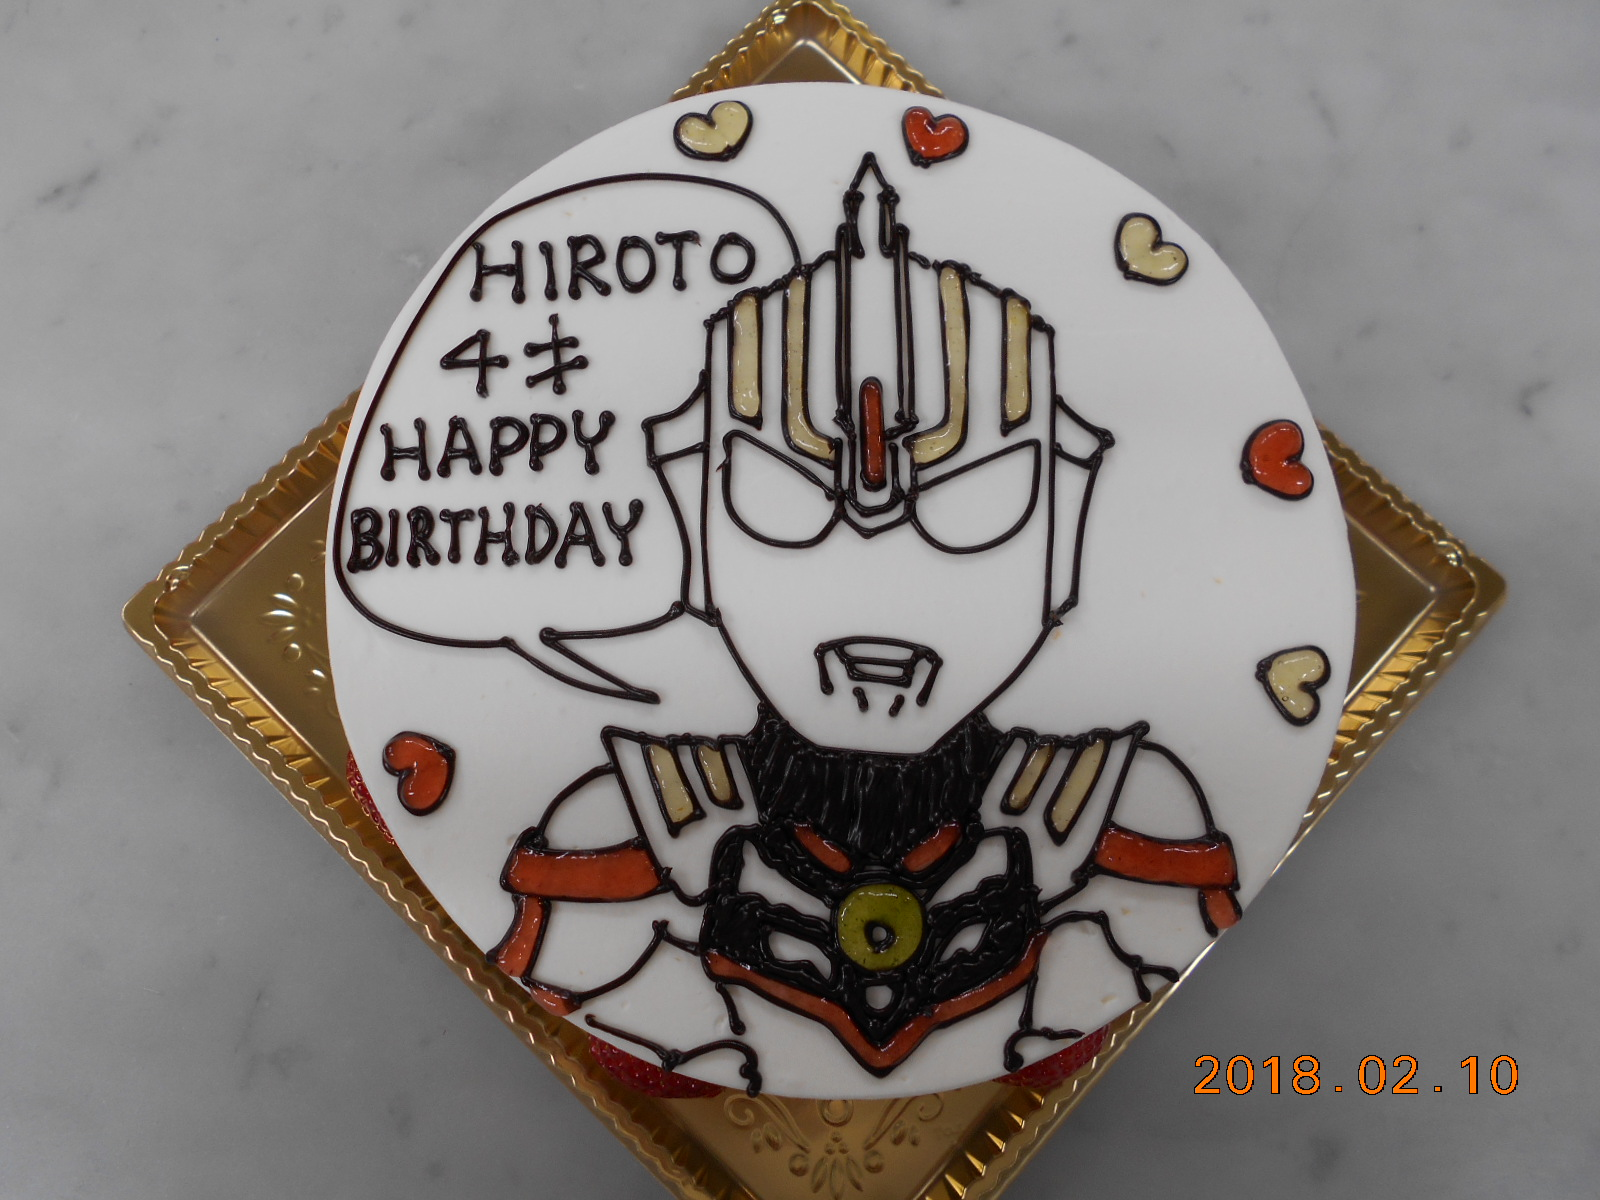 HIROTO 4才HAPPY BIRTHDAY